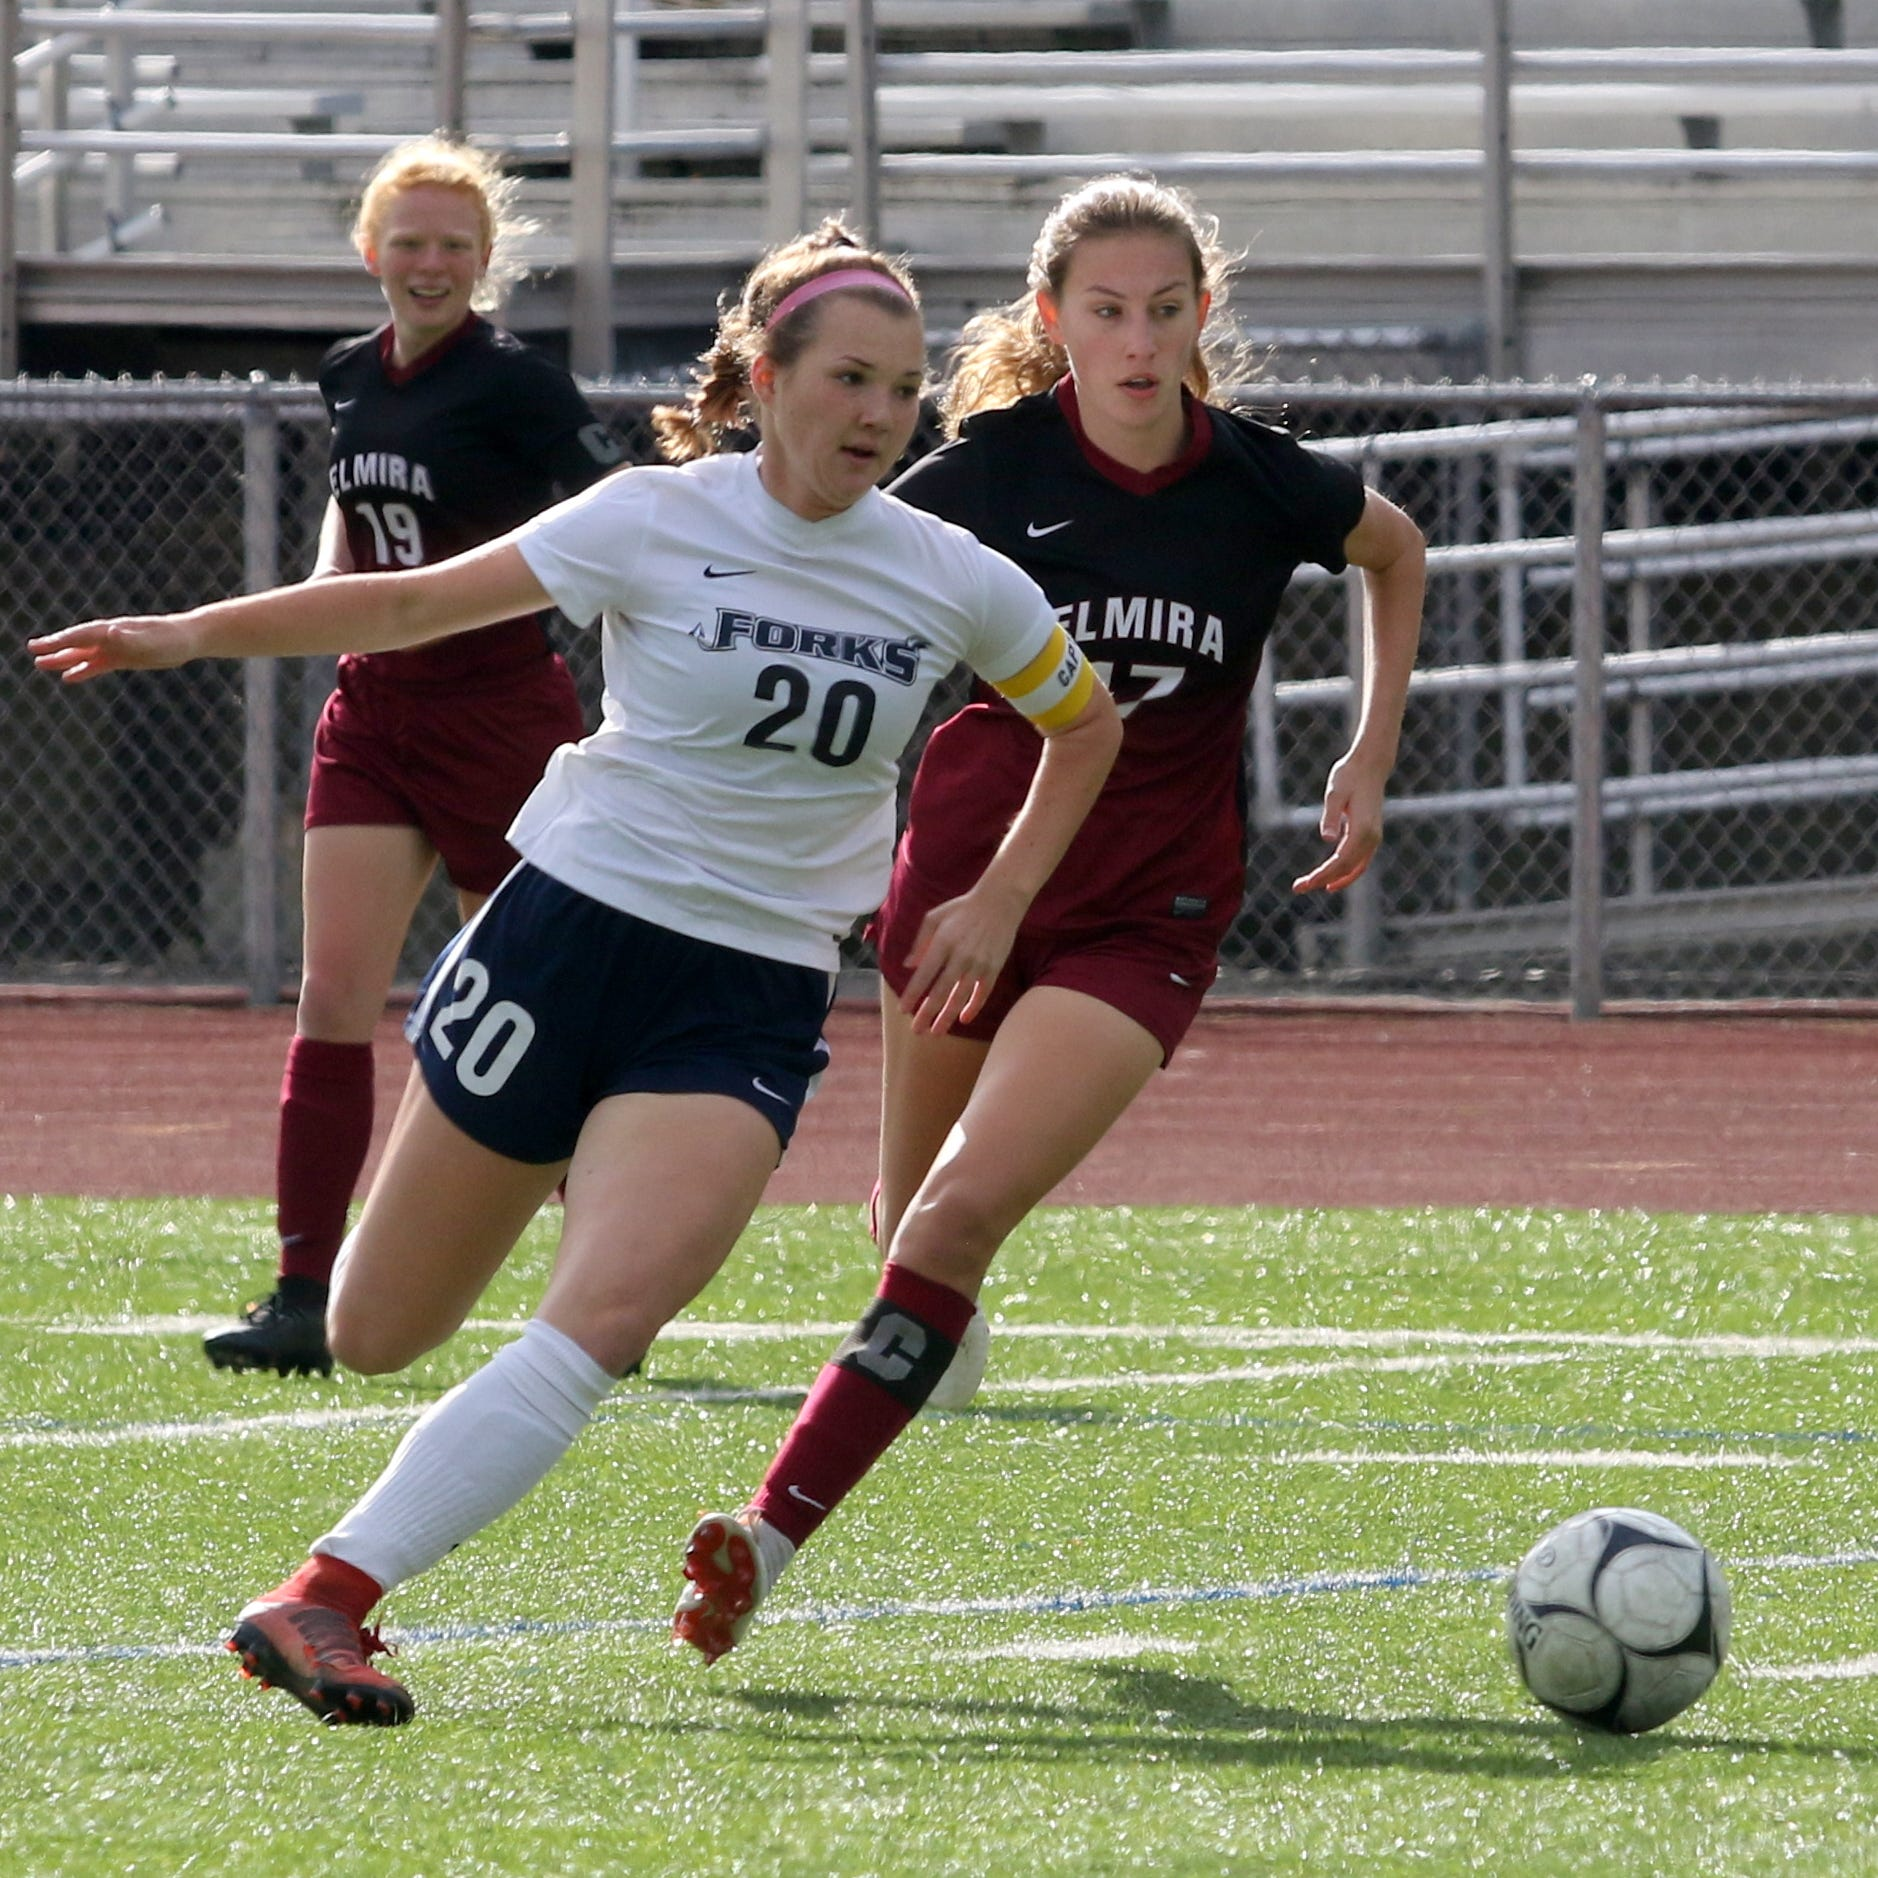 Emma Bough's hat trick lifts Chenango Forks girls past Elmira in STAC semifinal